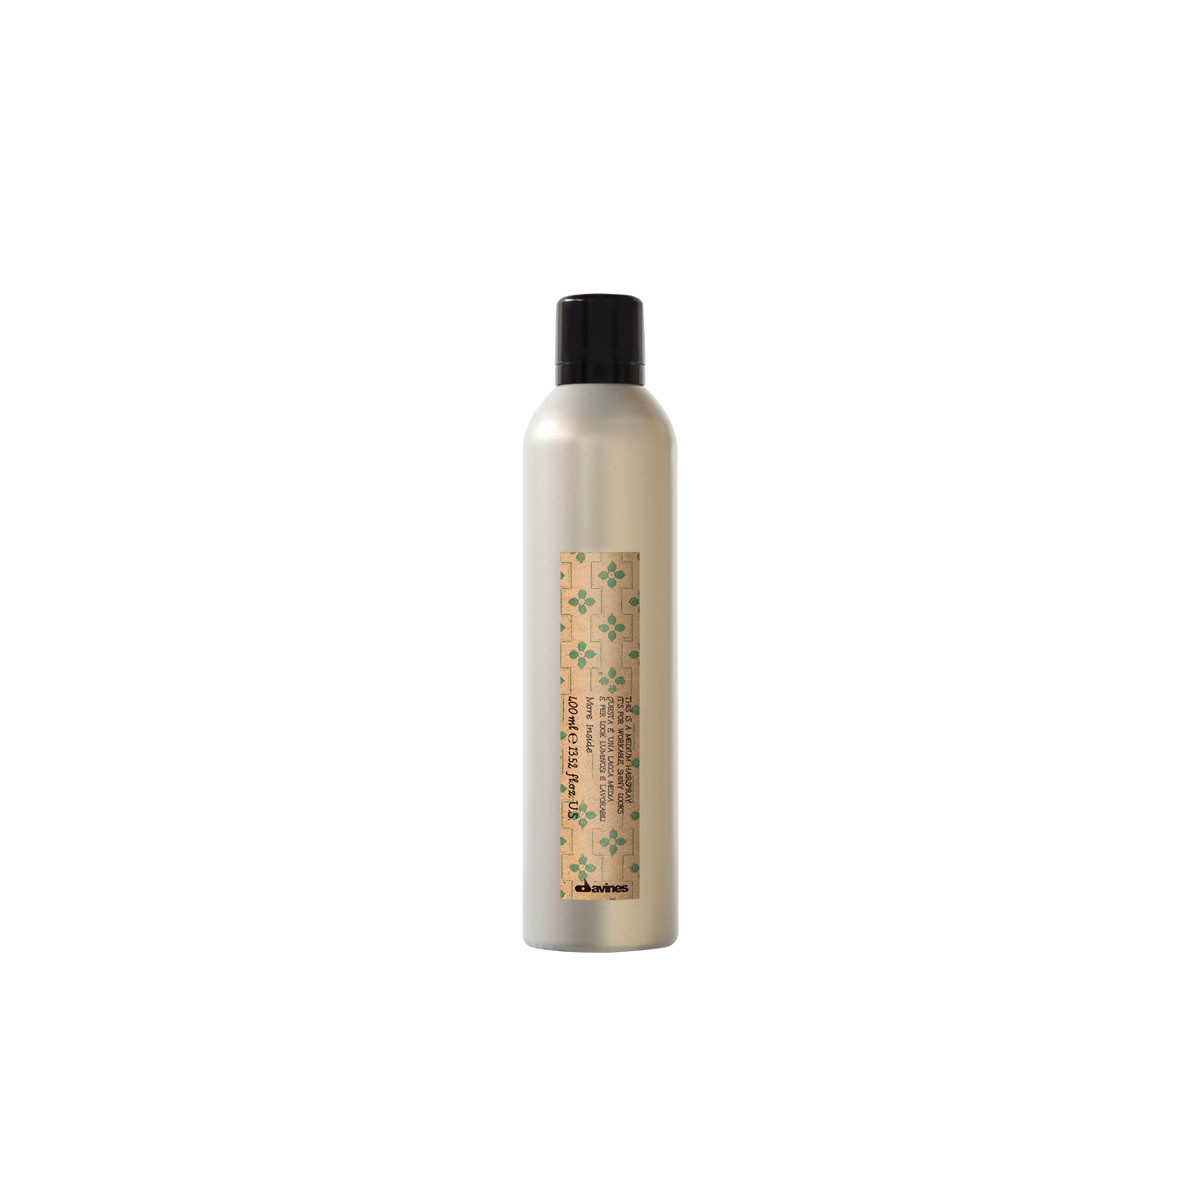 Davines This is a Medium Hairspray 250 ml | Spray Fijación Media